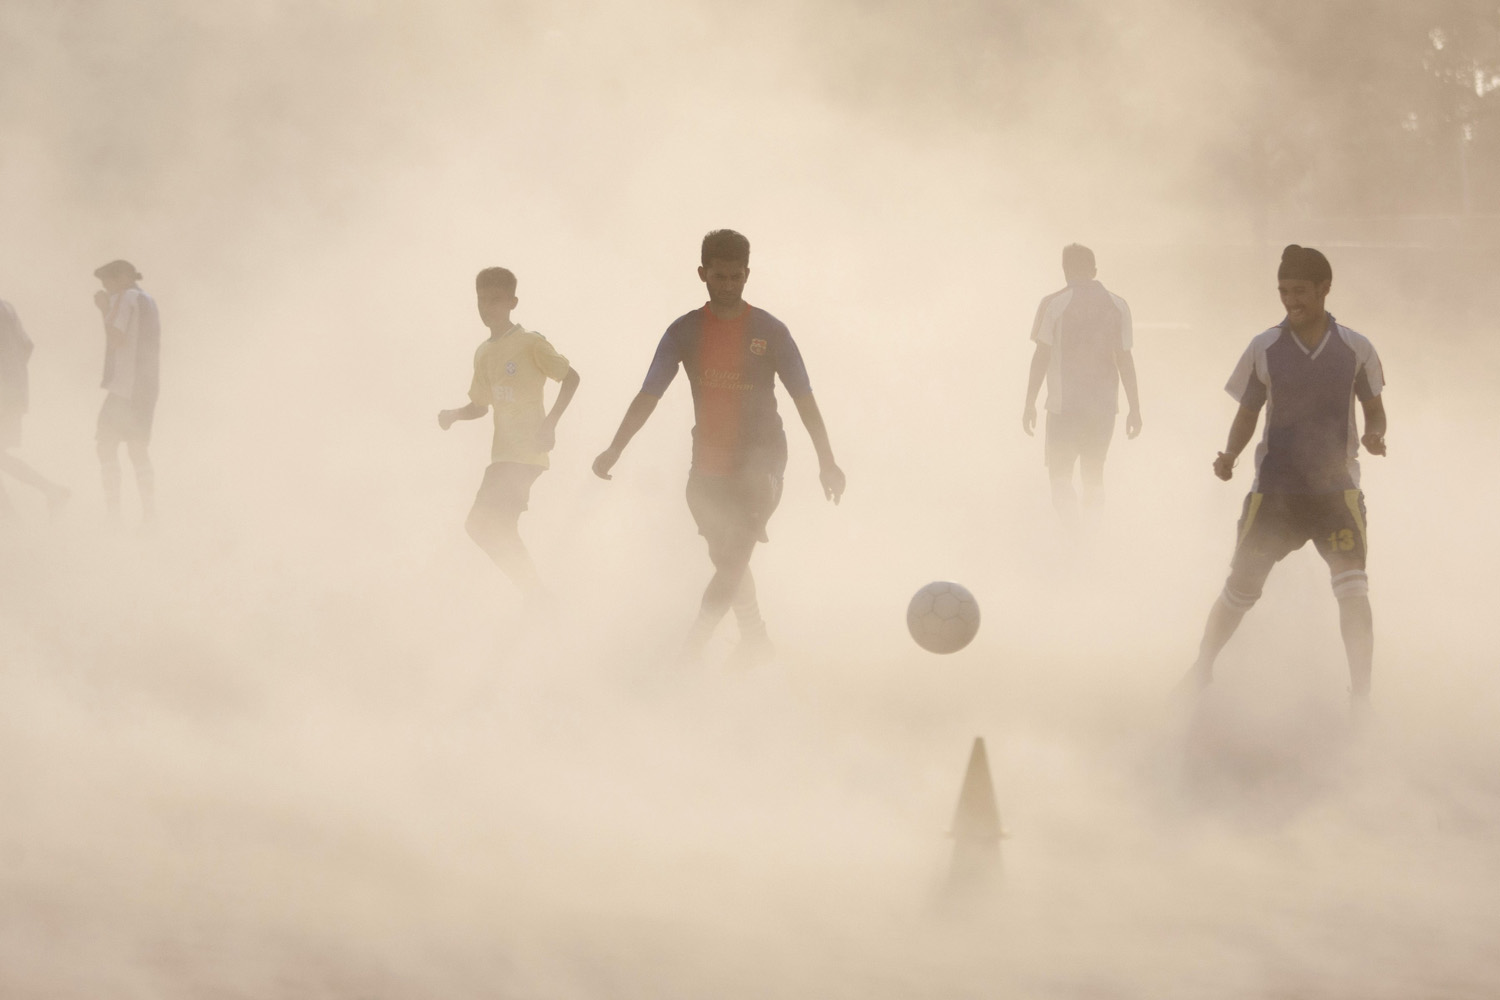 Jun. 11, 2014. Aspiring young Indian soccer players continue with their practice during a dust storm in Jammu, India. Soccer fans around the world are gearing up to watch the Soccer World Cup that begins in Brazil Thursday.